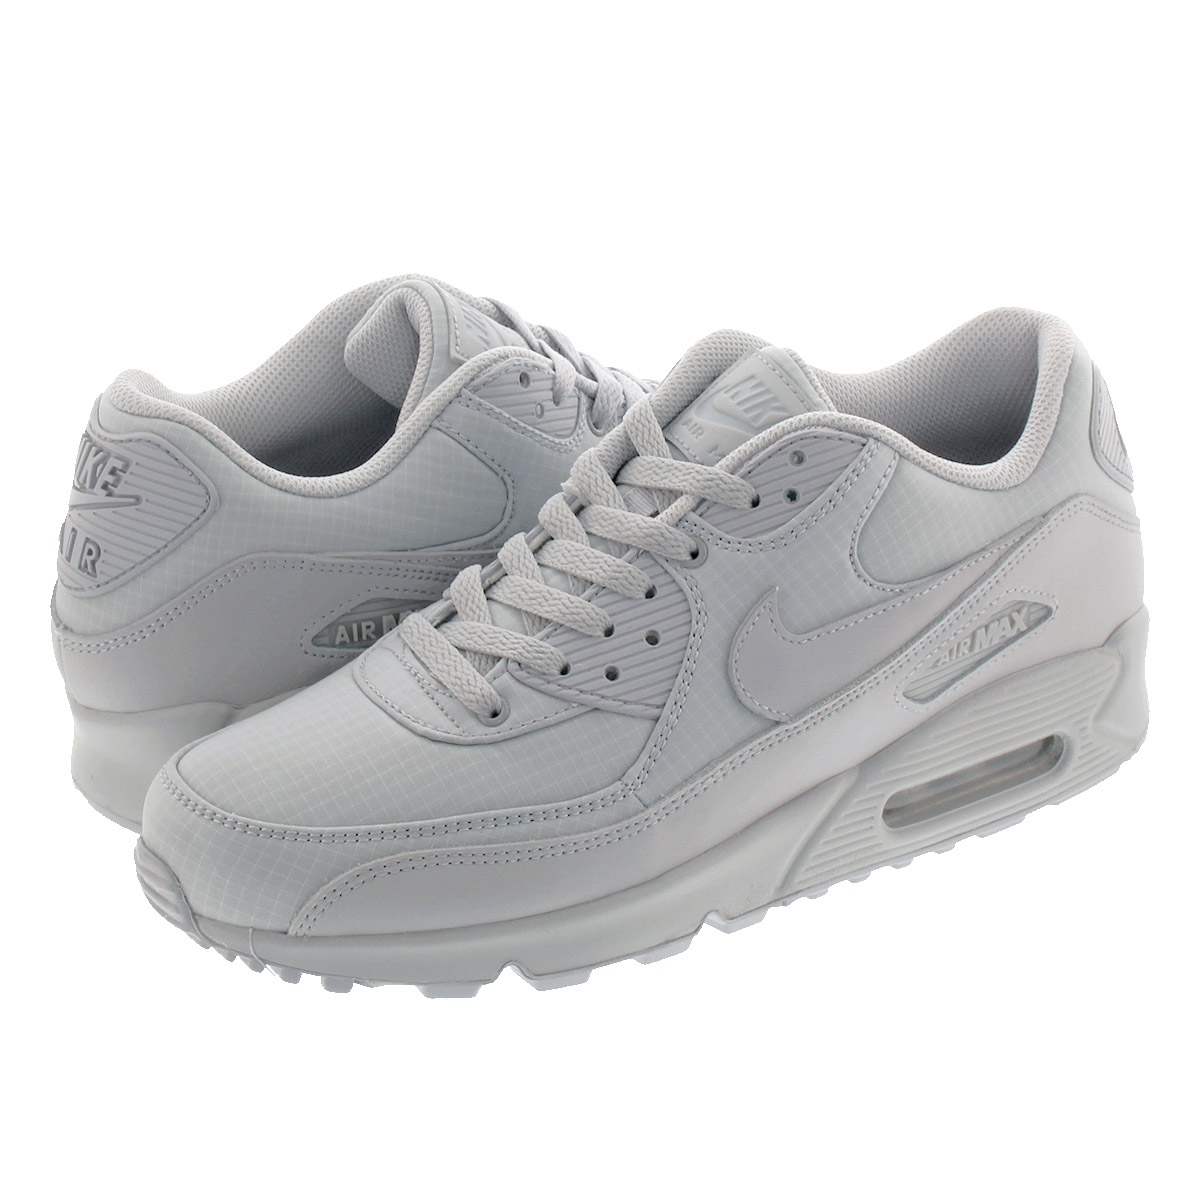 NIKE AIR MAX 90 ESSENTIAL Kie Ney AMAX 90 essential WOLF GREYWOLF GREYWOLF GREY 537,384 068